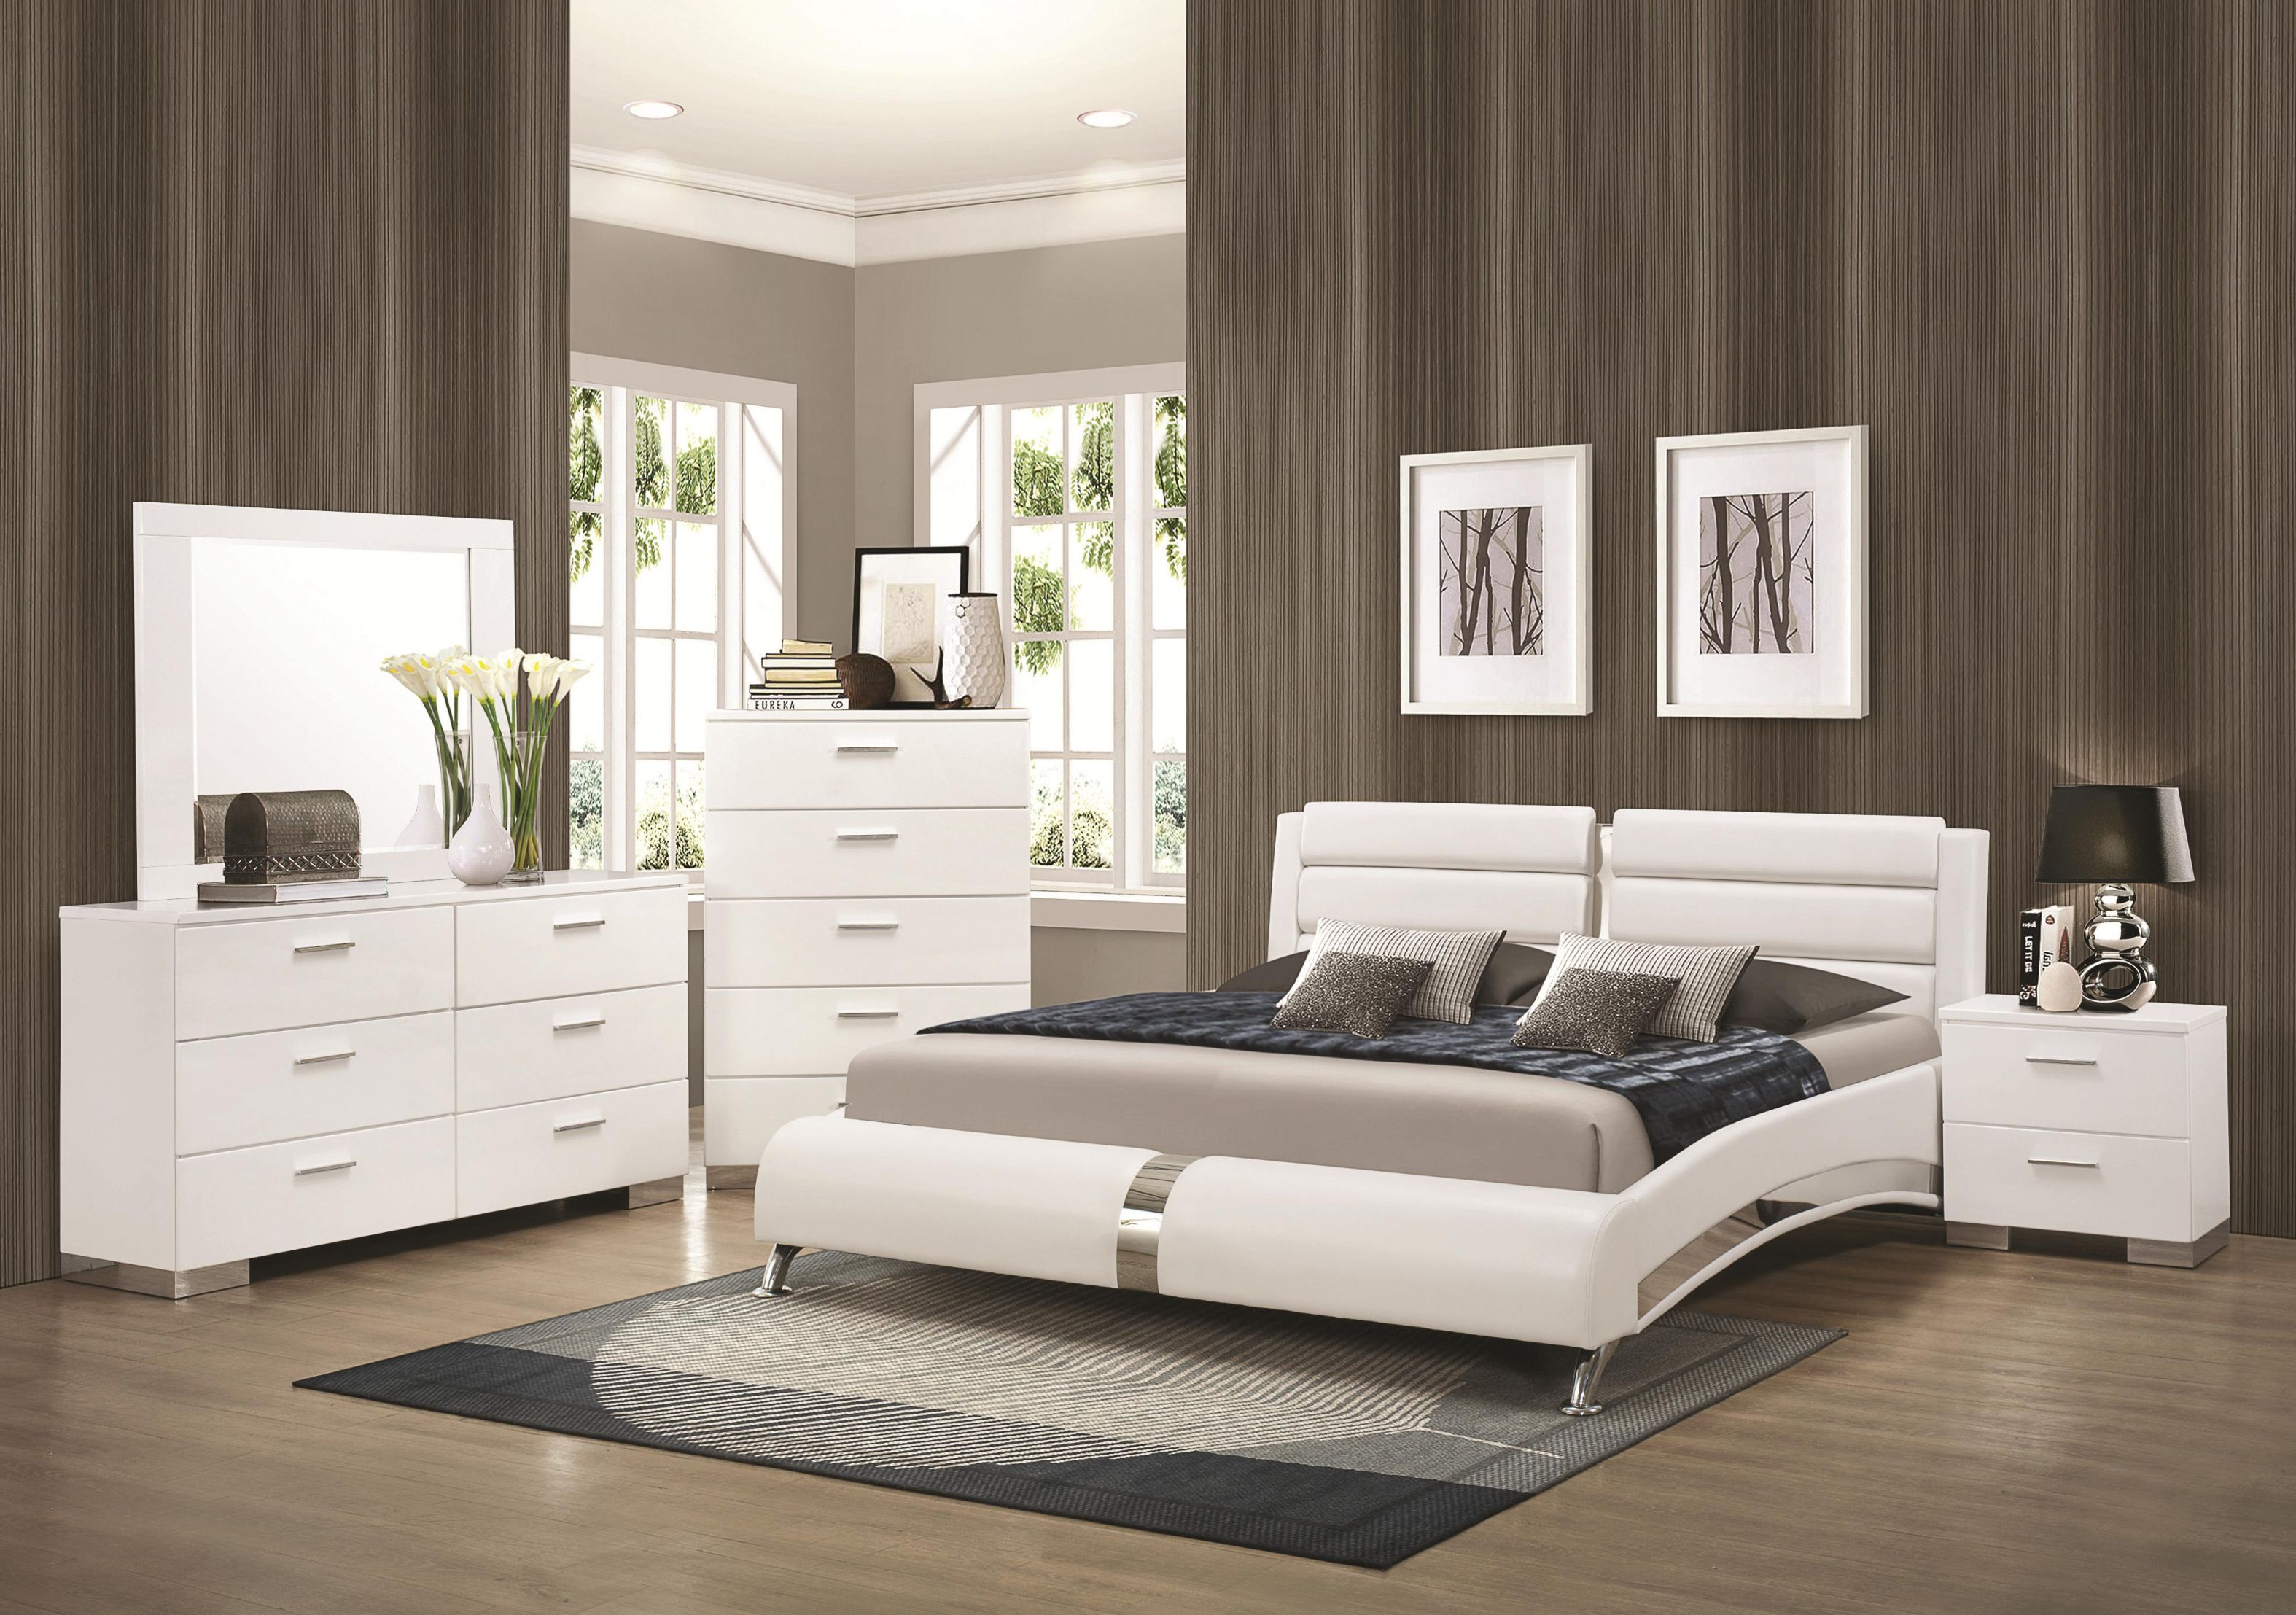 Beds, Co Furniture - Contemporary Bedroom Suite Co 300345 | with regard to Contemporary Bedroom Sets